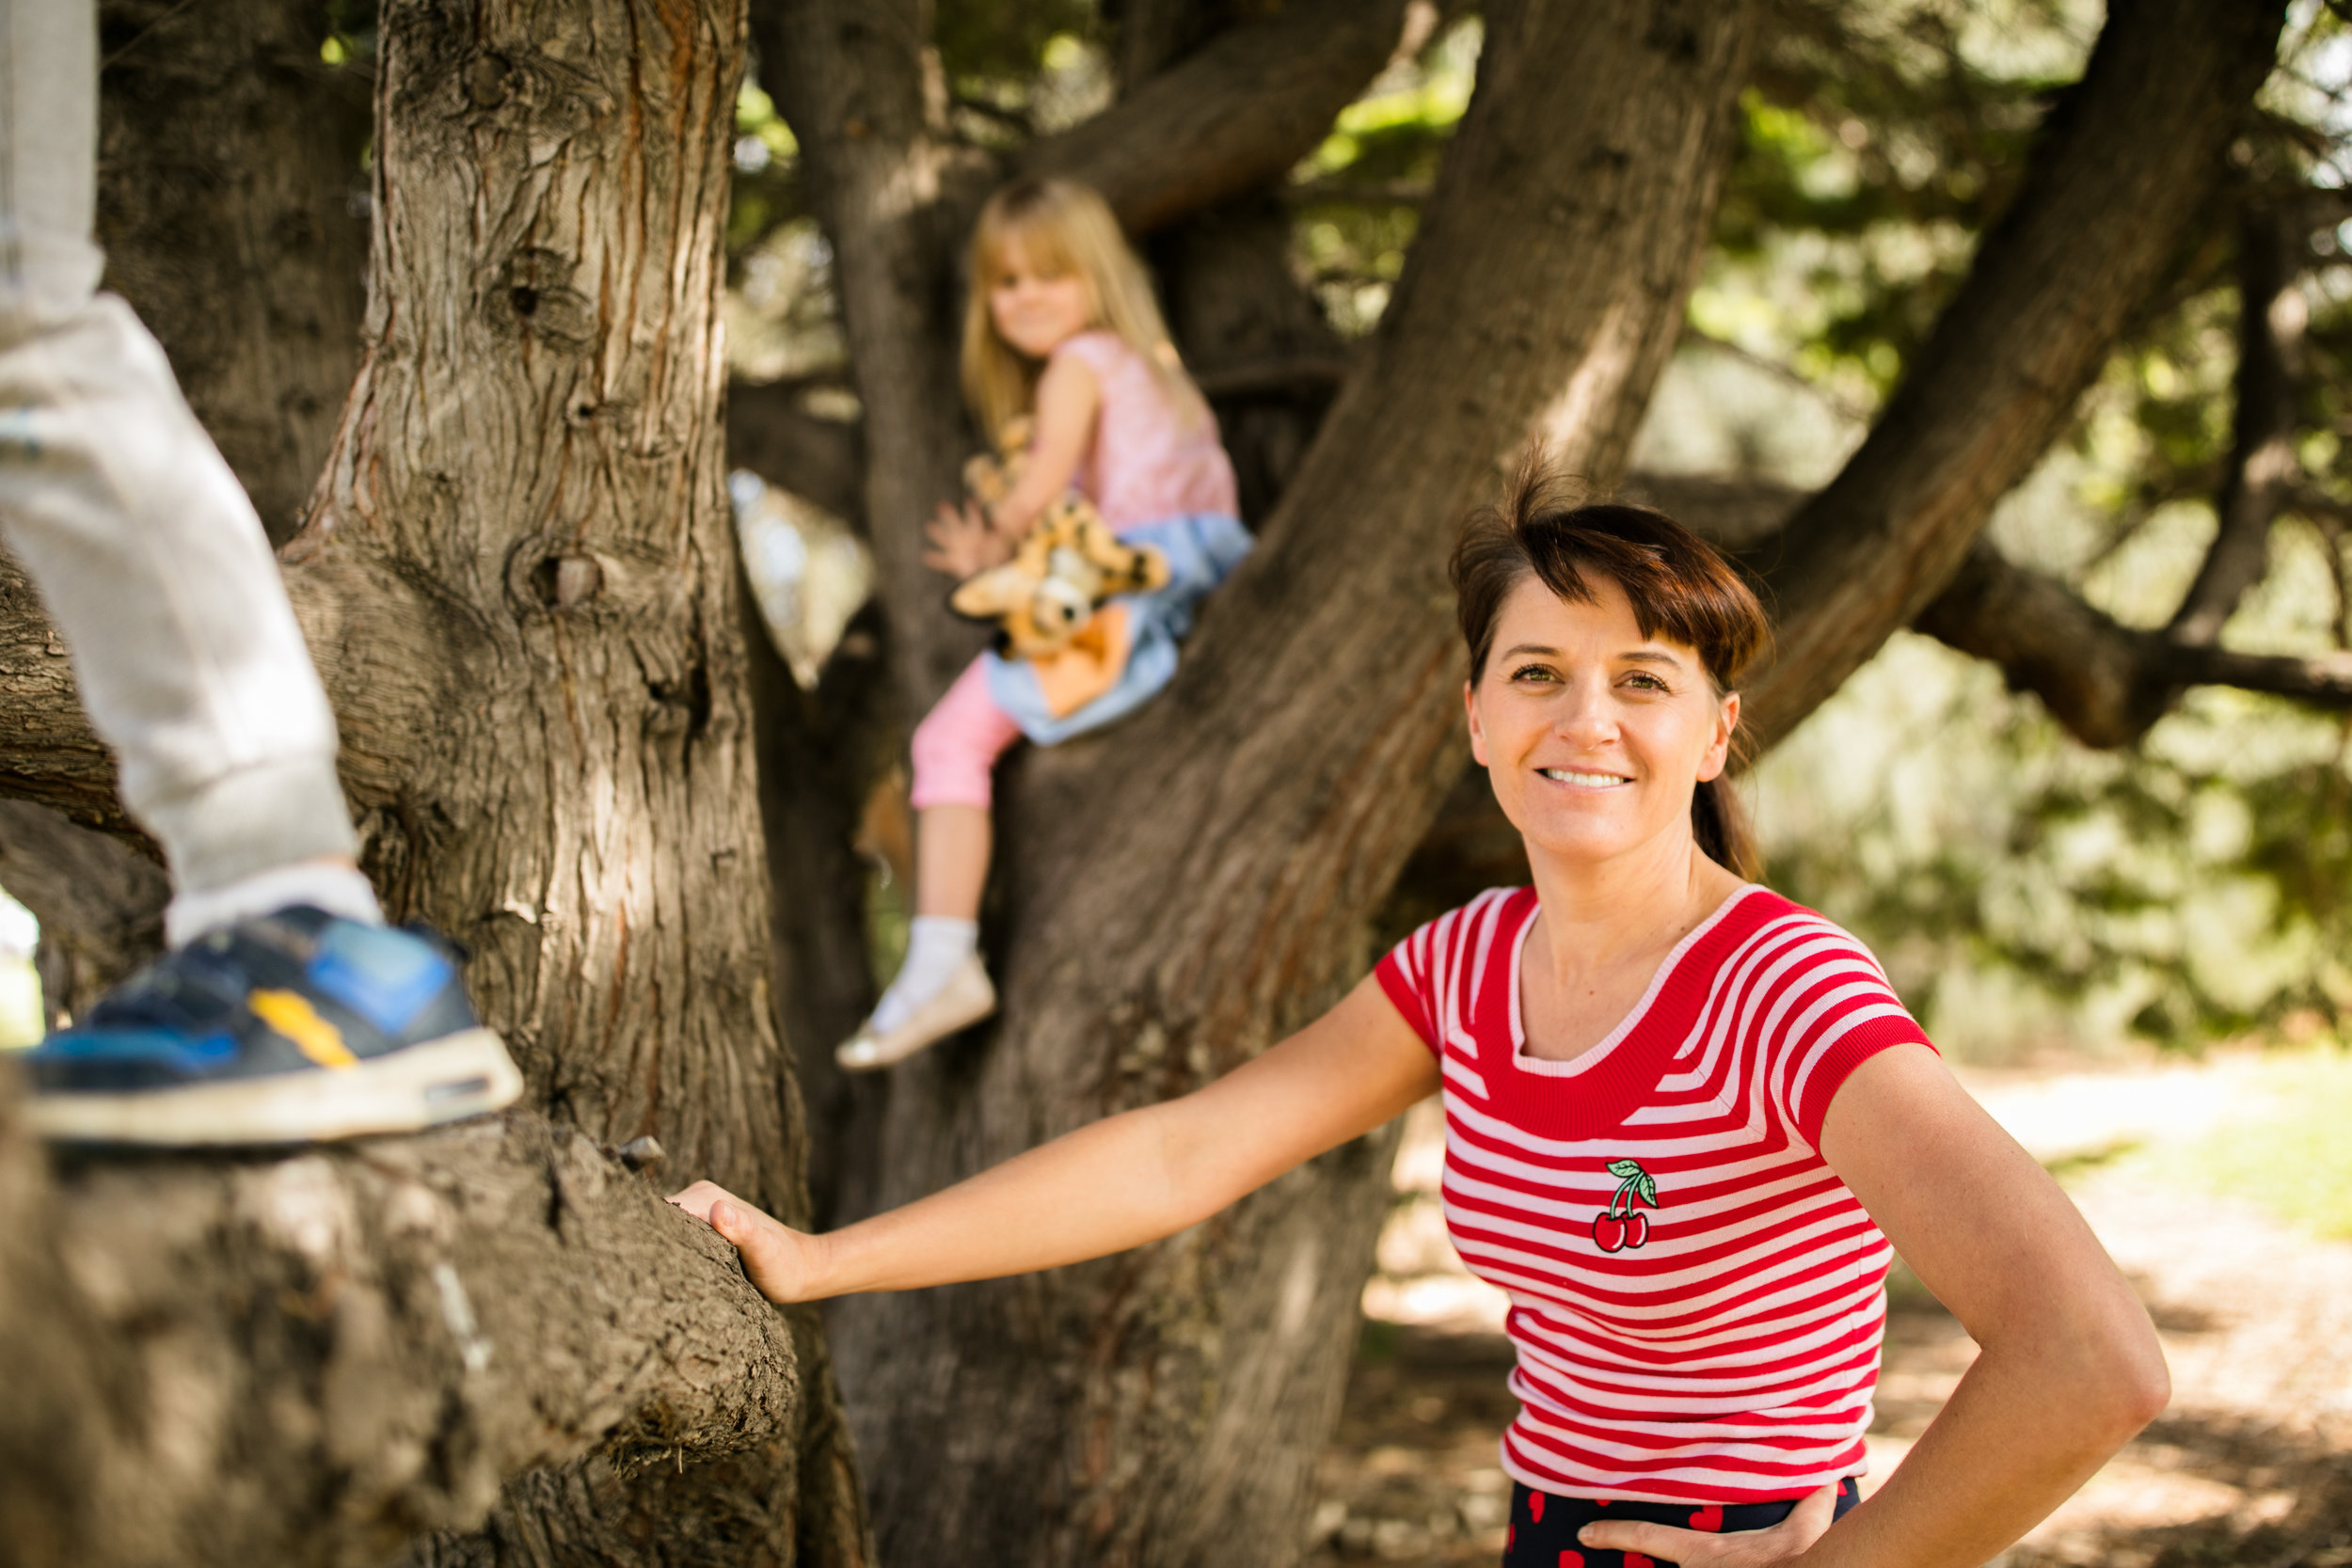 Mamma Sammi is the founder of the Mamma Knows West and has a huge passion for connecting people, the west and of course her family. Sammi has a background in corporate communications and is part computer nerd, part wilderness explorer, part photographer and part writer SO building a website filled with pretty pics and reviews of local spots is well, her kind of heaven.